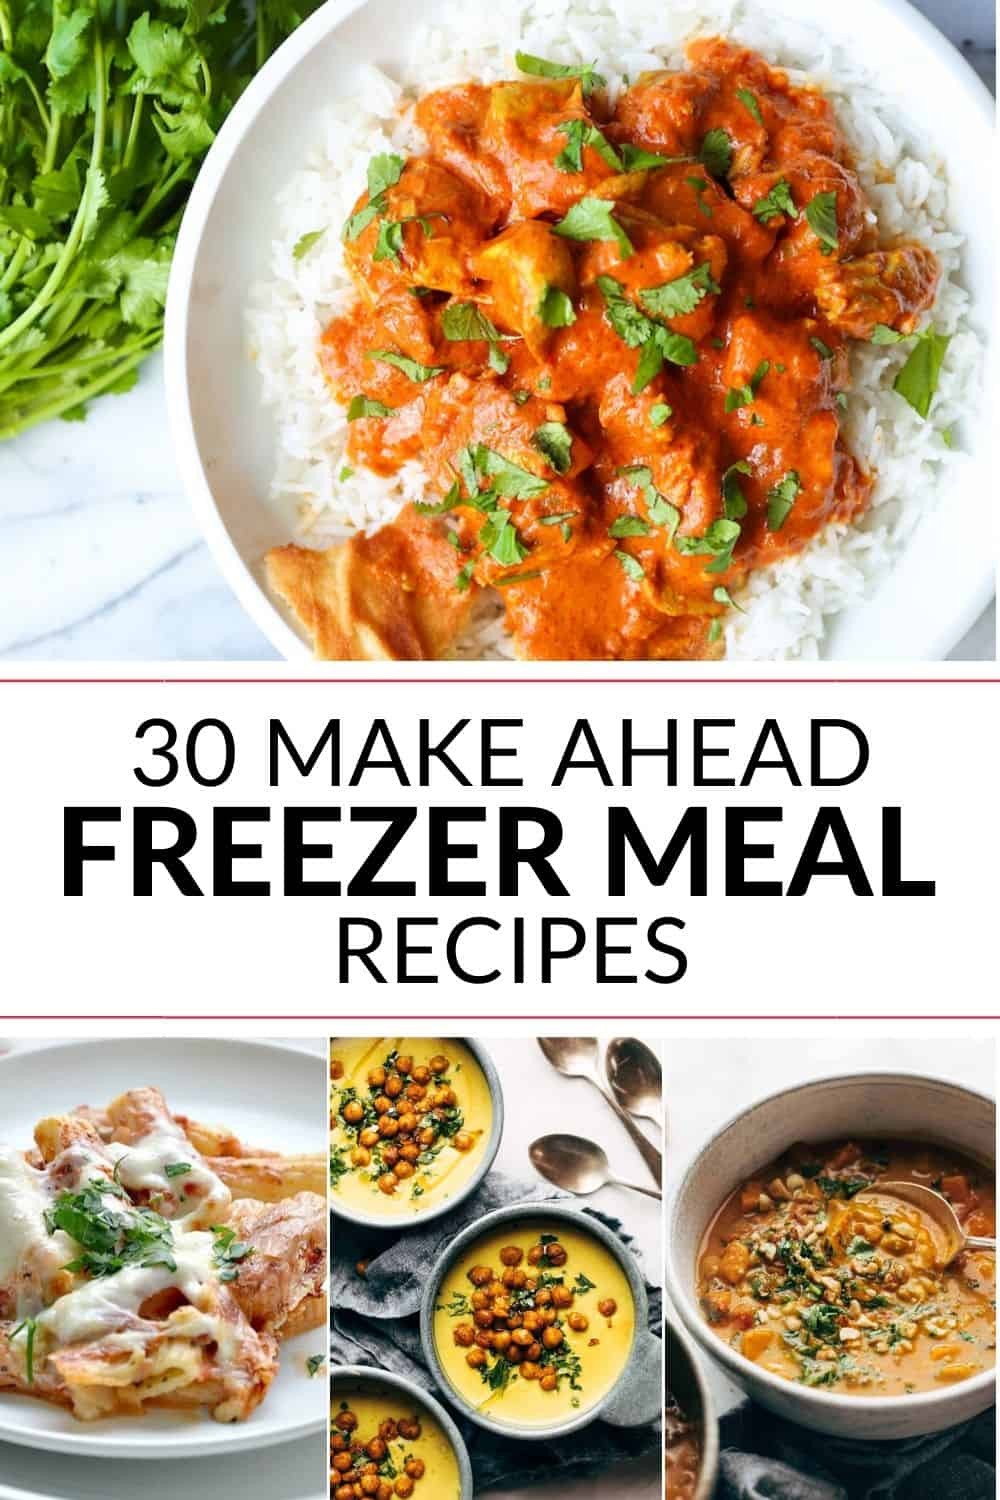 These freezer meals are a great idea for any night where you need to fix something up quick!